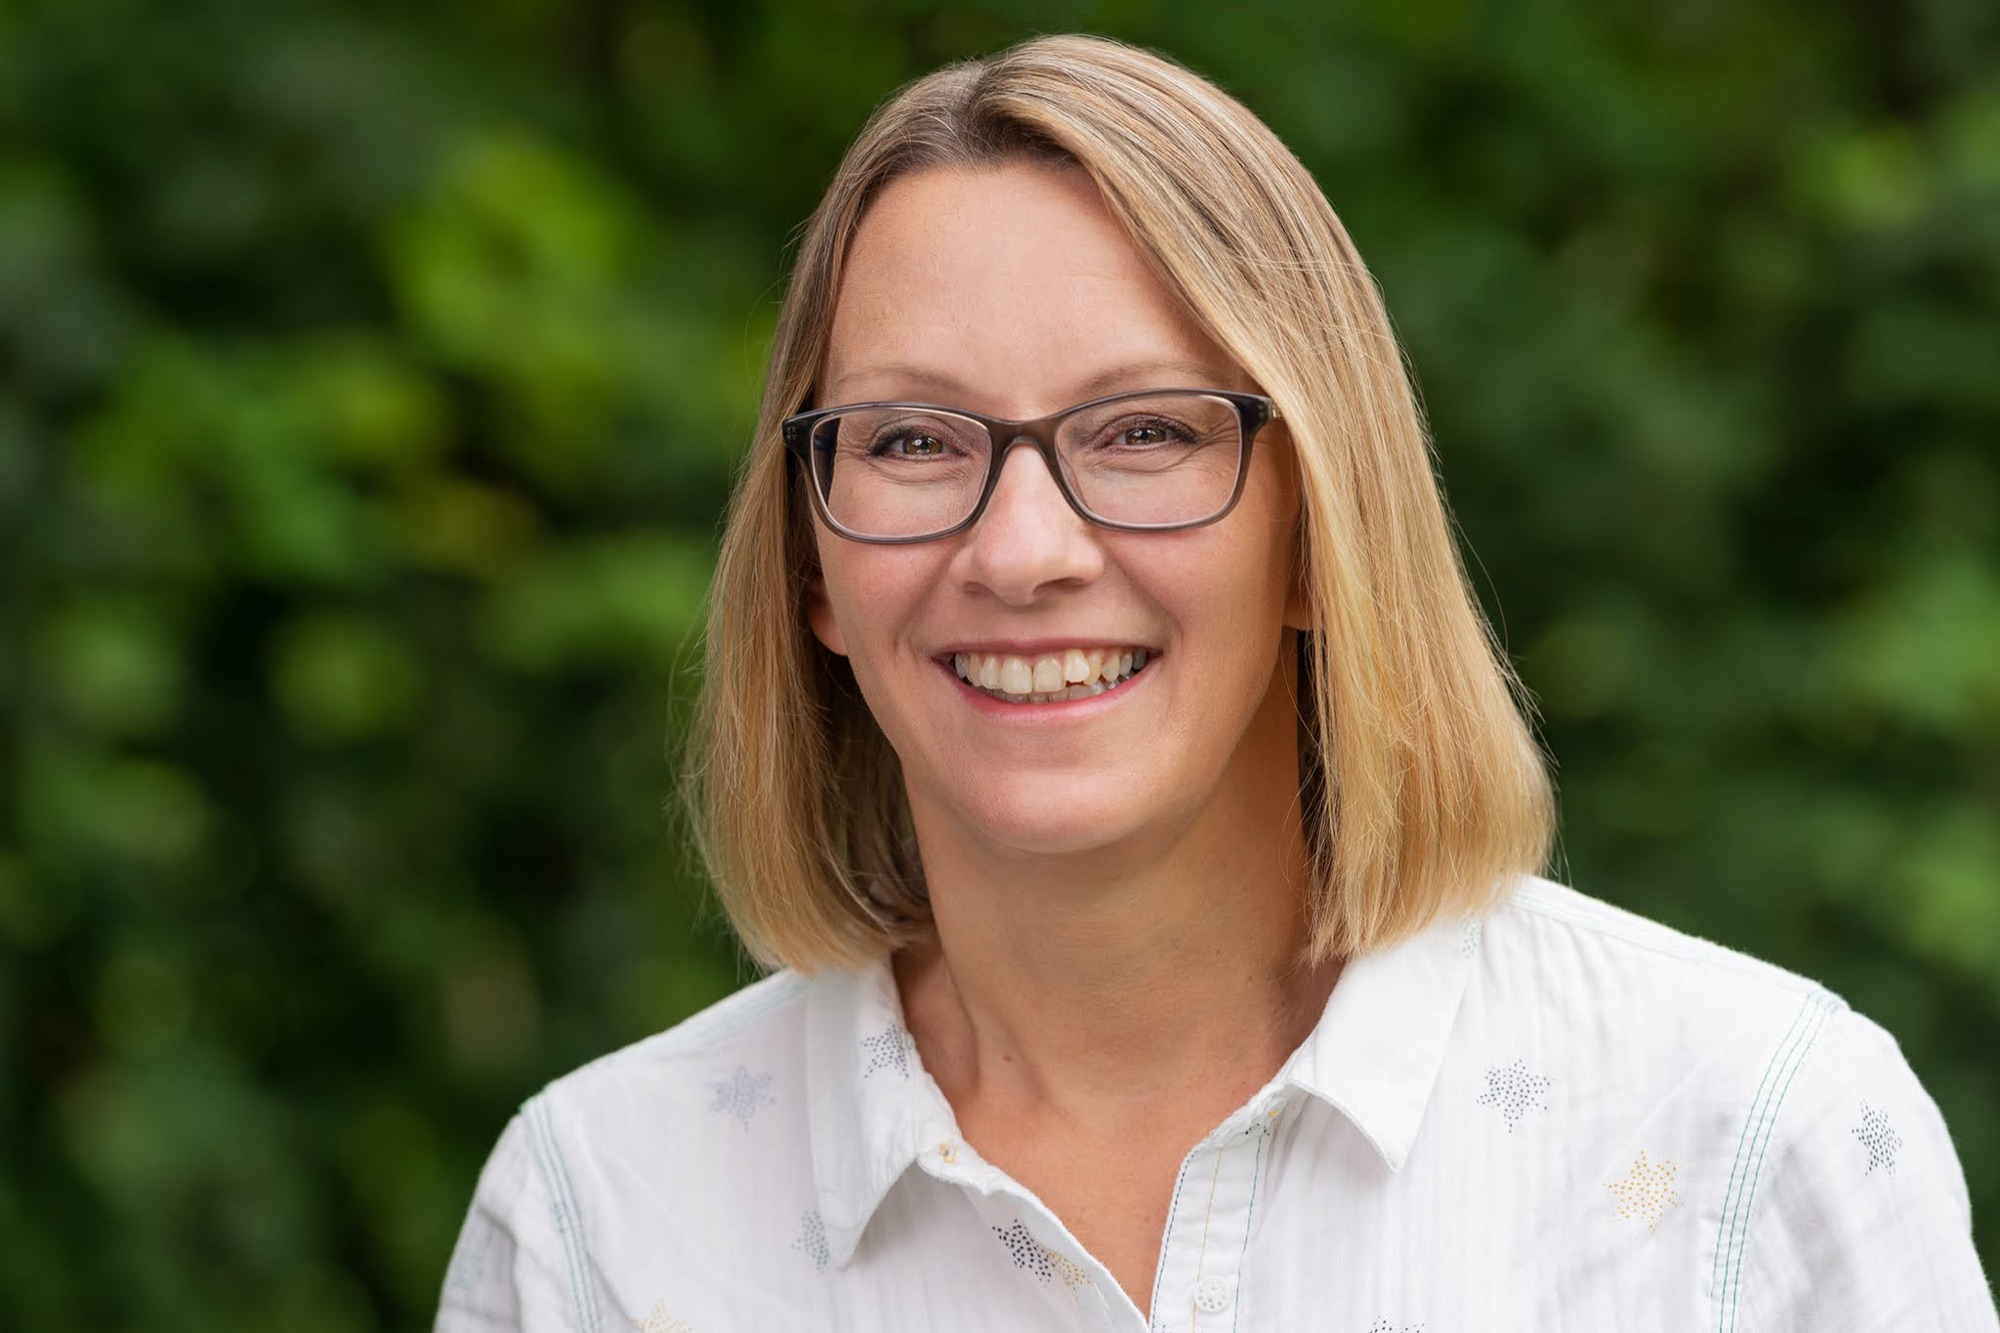 Dr Sophie Mayhew of Equanimity Clinical Psychology Services